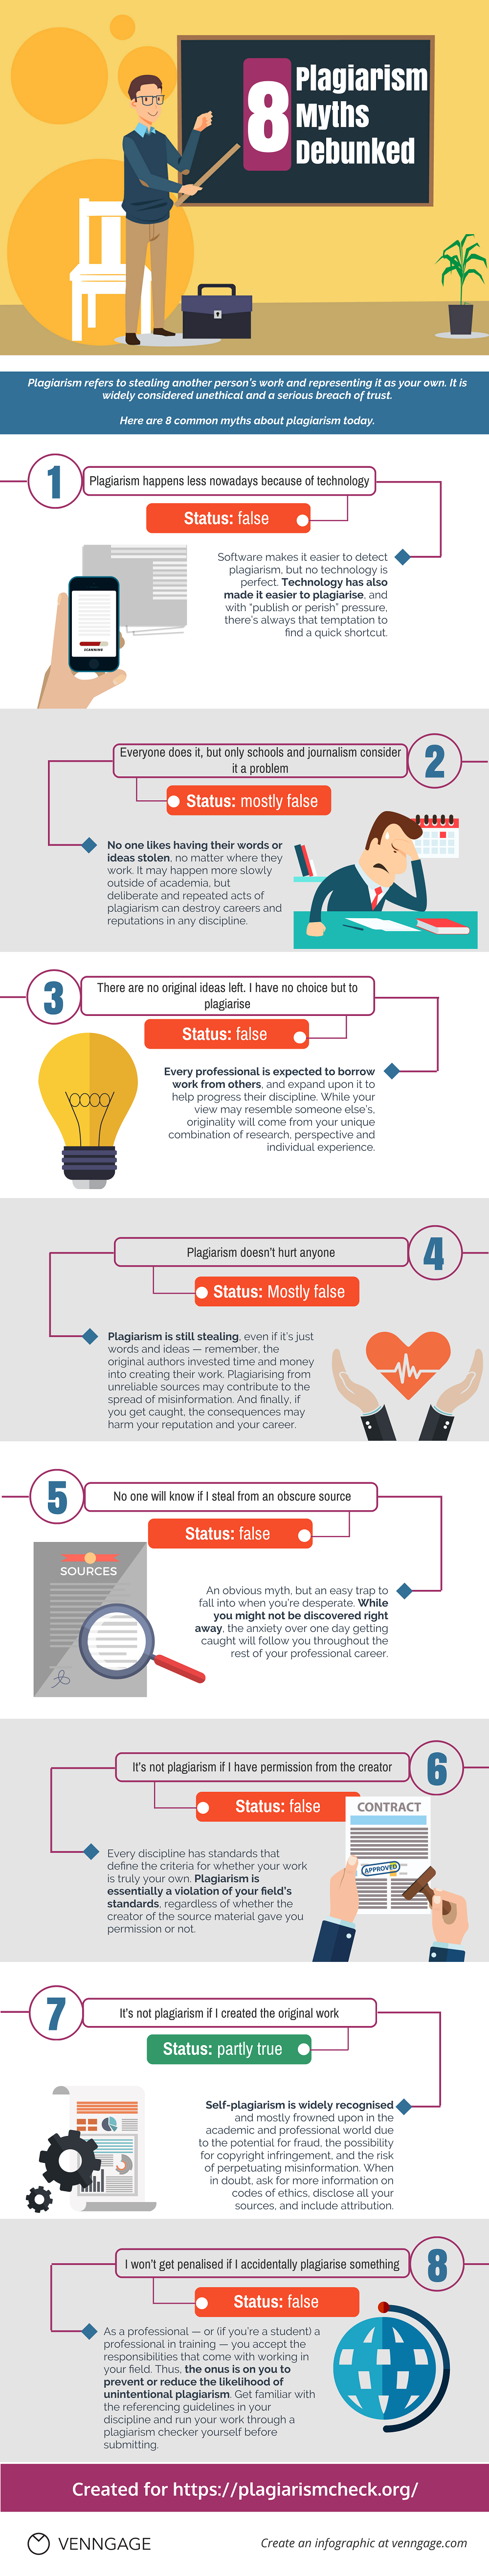 8 Plagiarism Myths Debunked Infographic by PlagiarismCheck.org